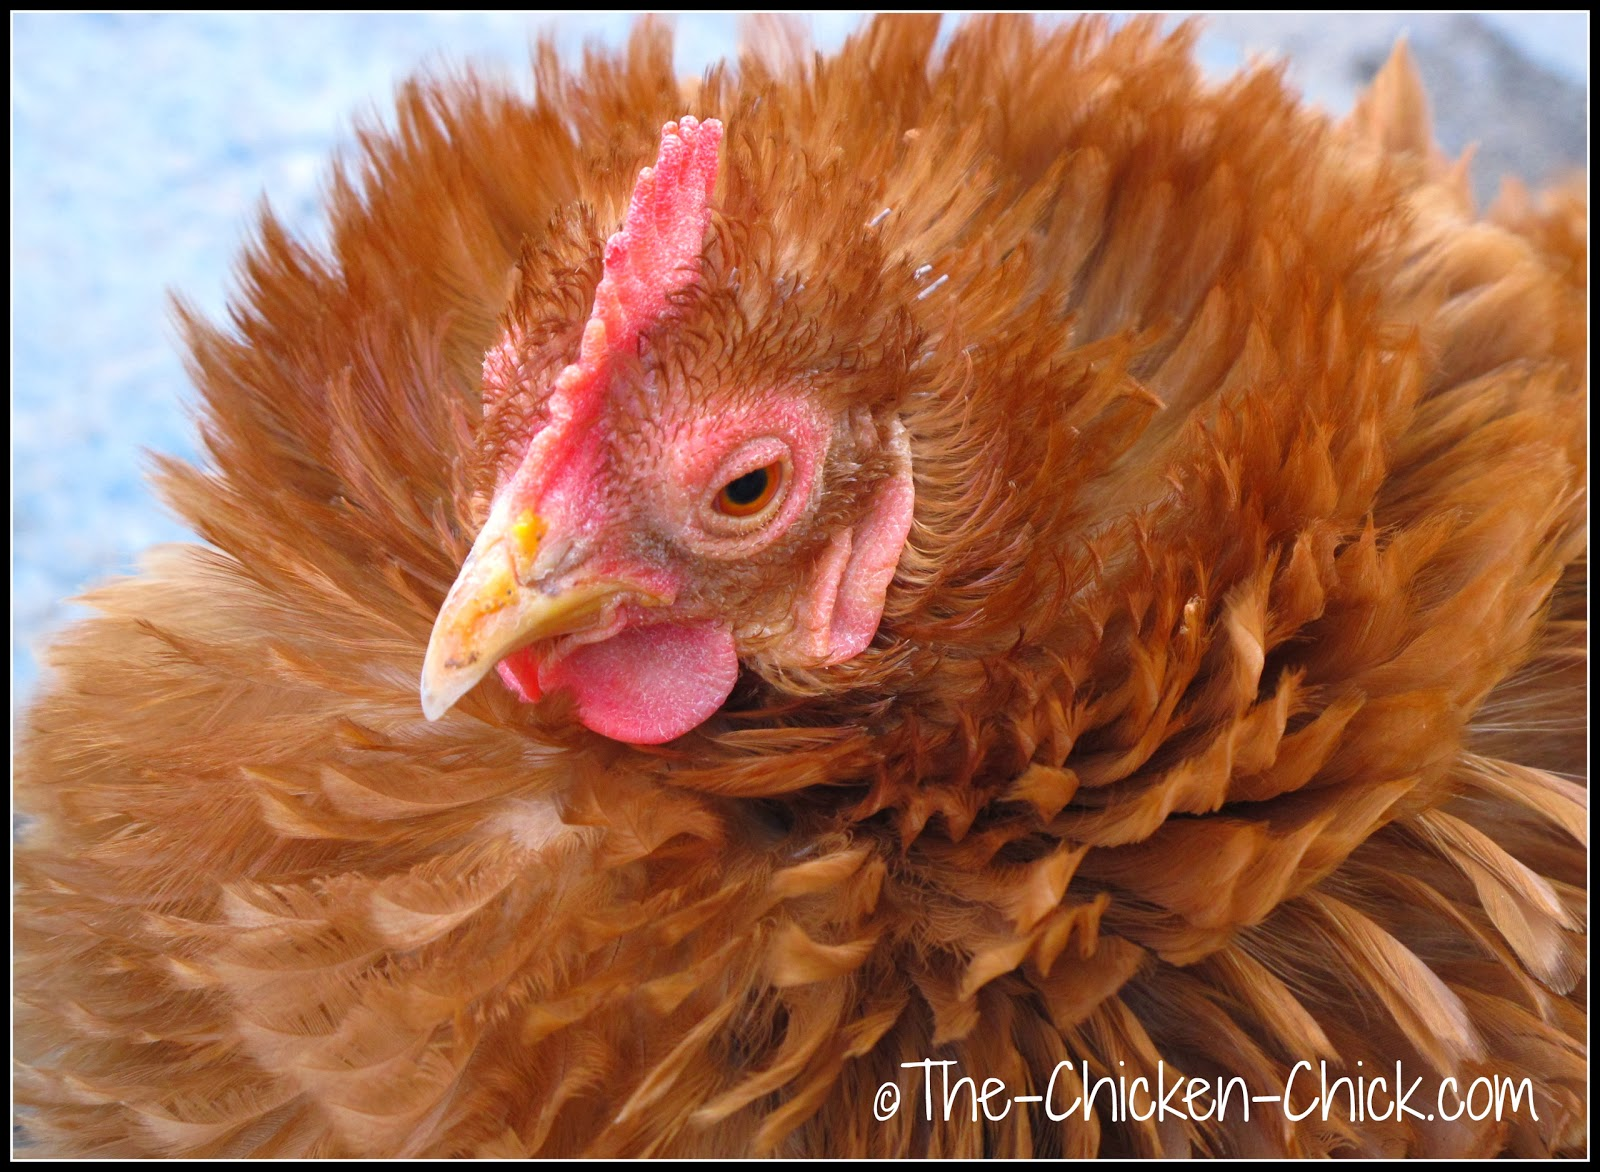 Egg yolk on a chicken's beak can indicate an egg eater.